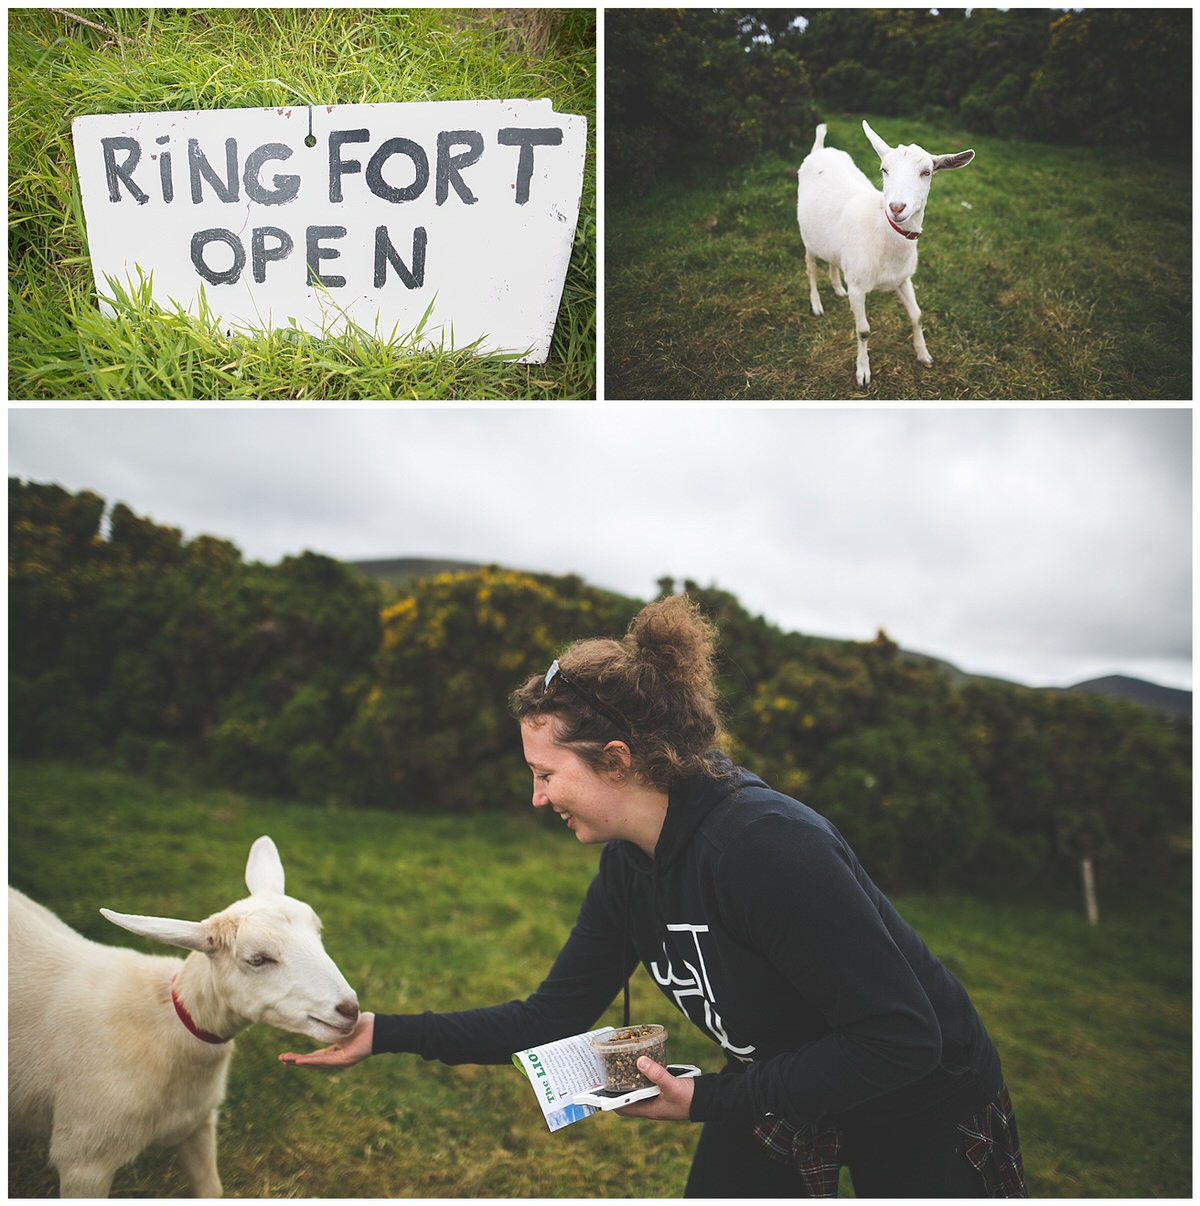 Goat feeding at a Ring Fort in Kerry